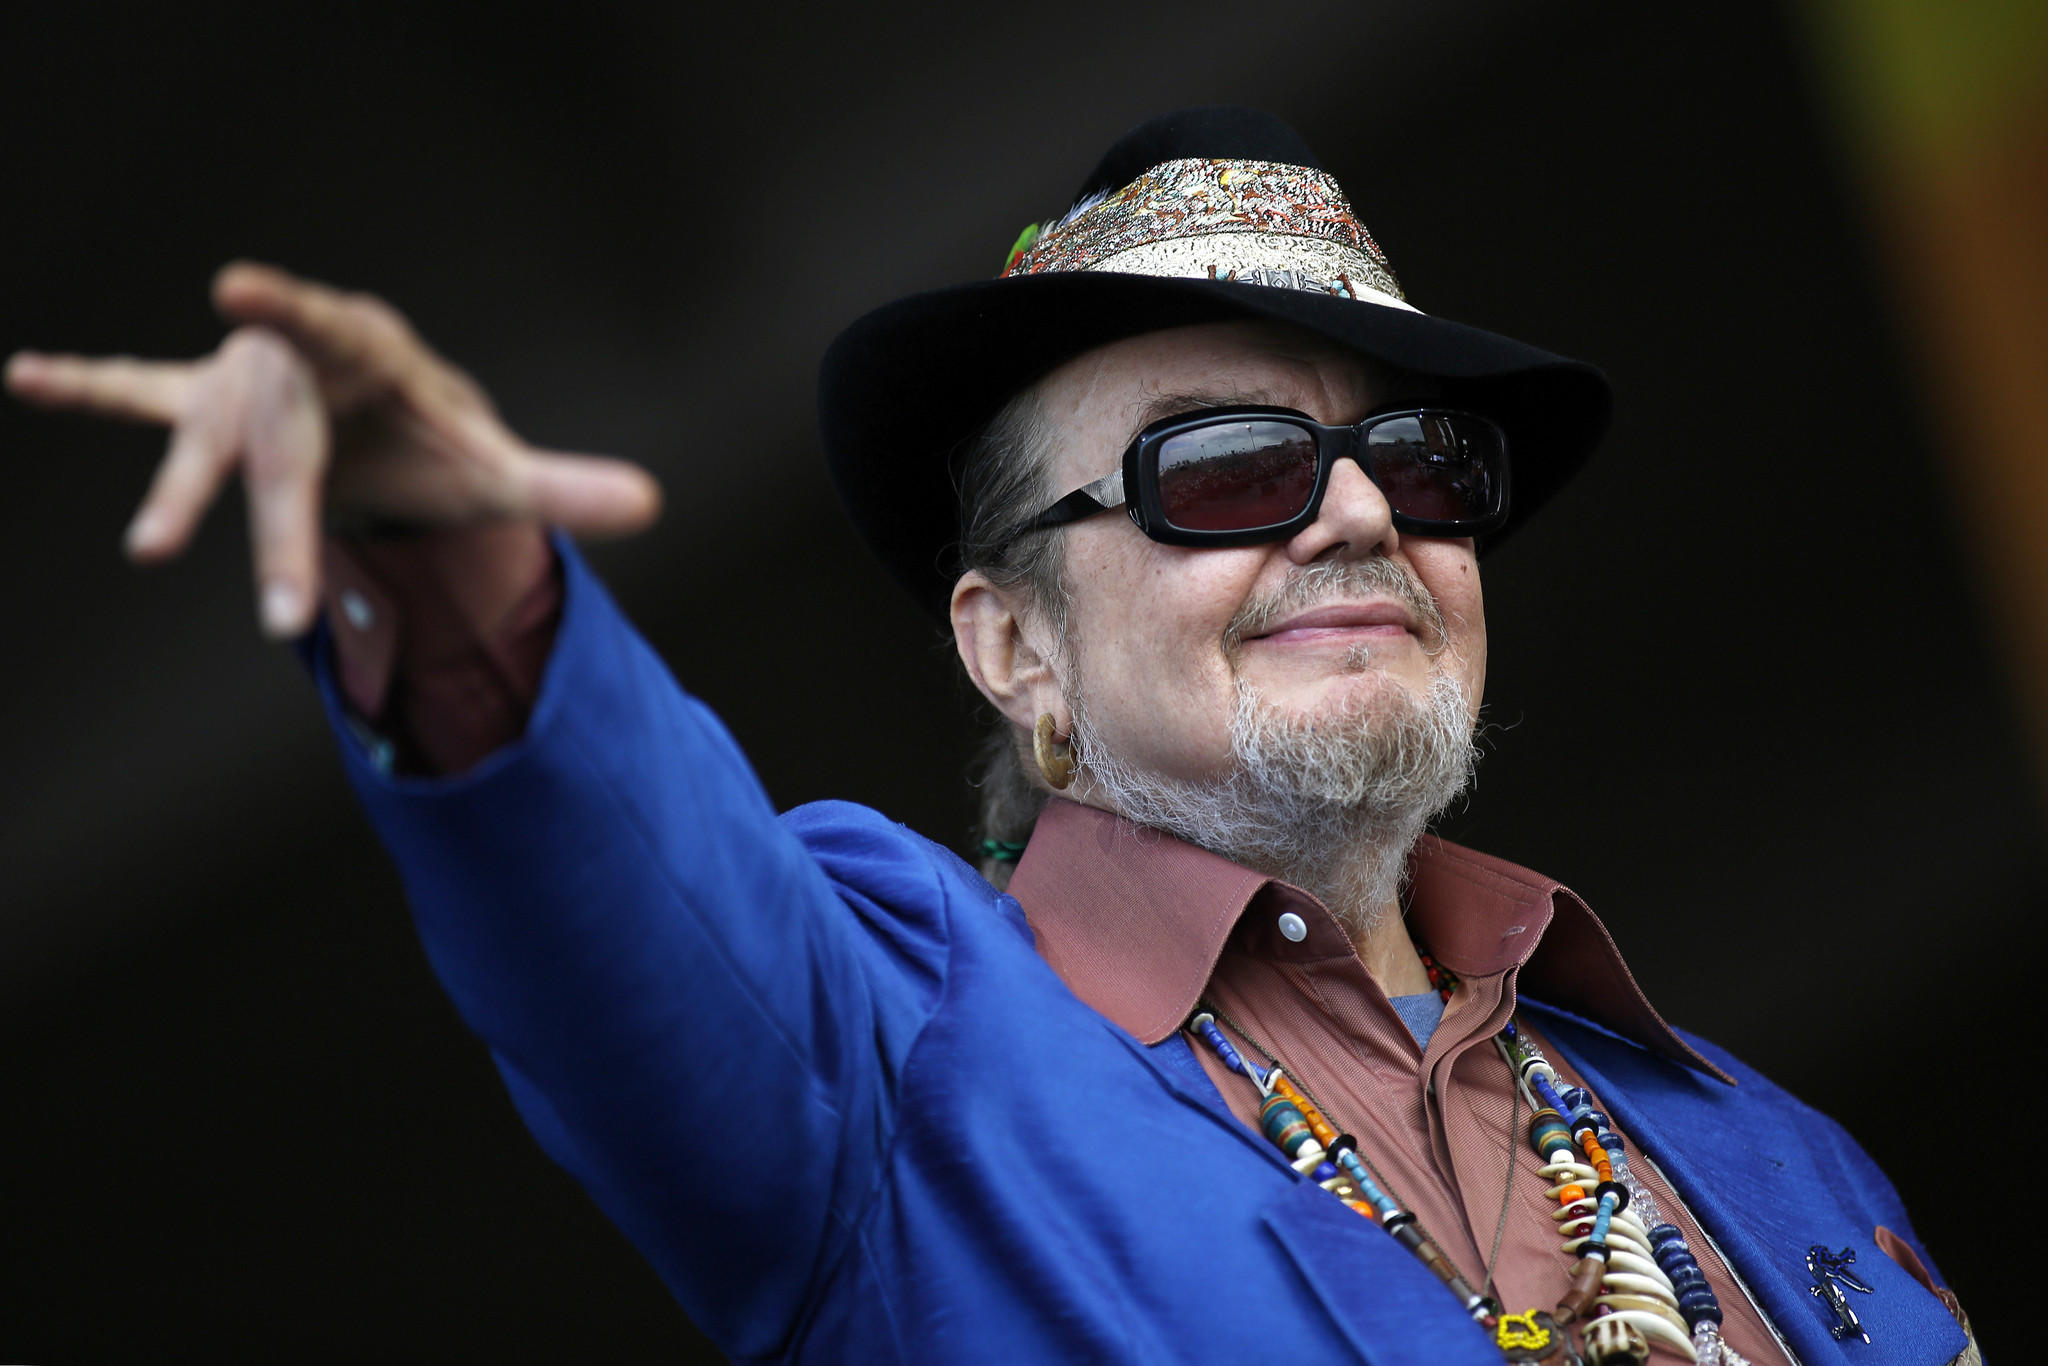 Dr. John to play the 2014 Chicago Blues Festival.